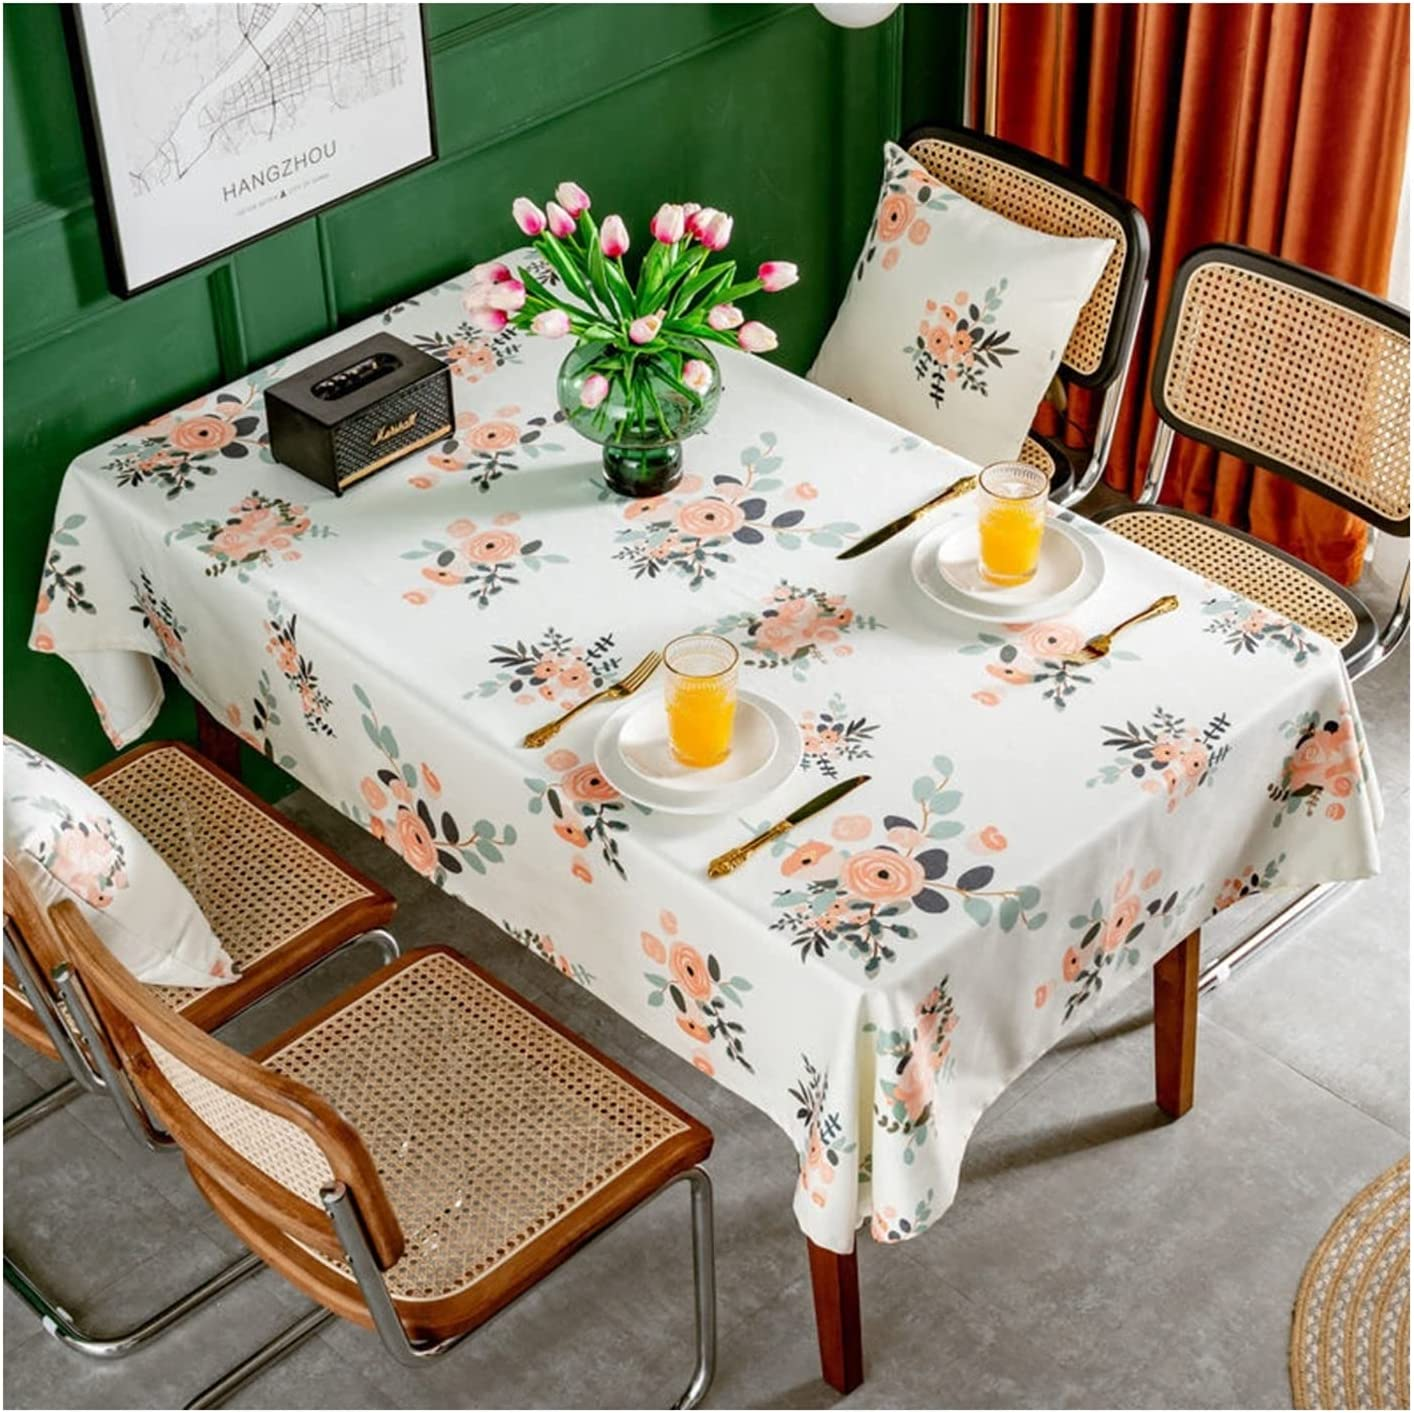 HZYAN Table Cover New popularity PVC Tablecloth Limited Special Price for Waterproof